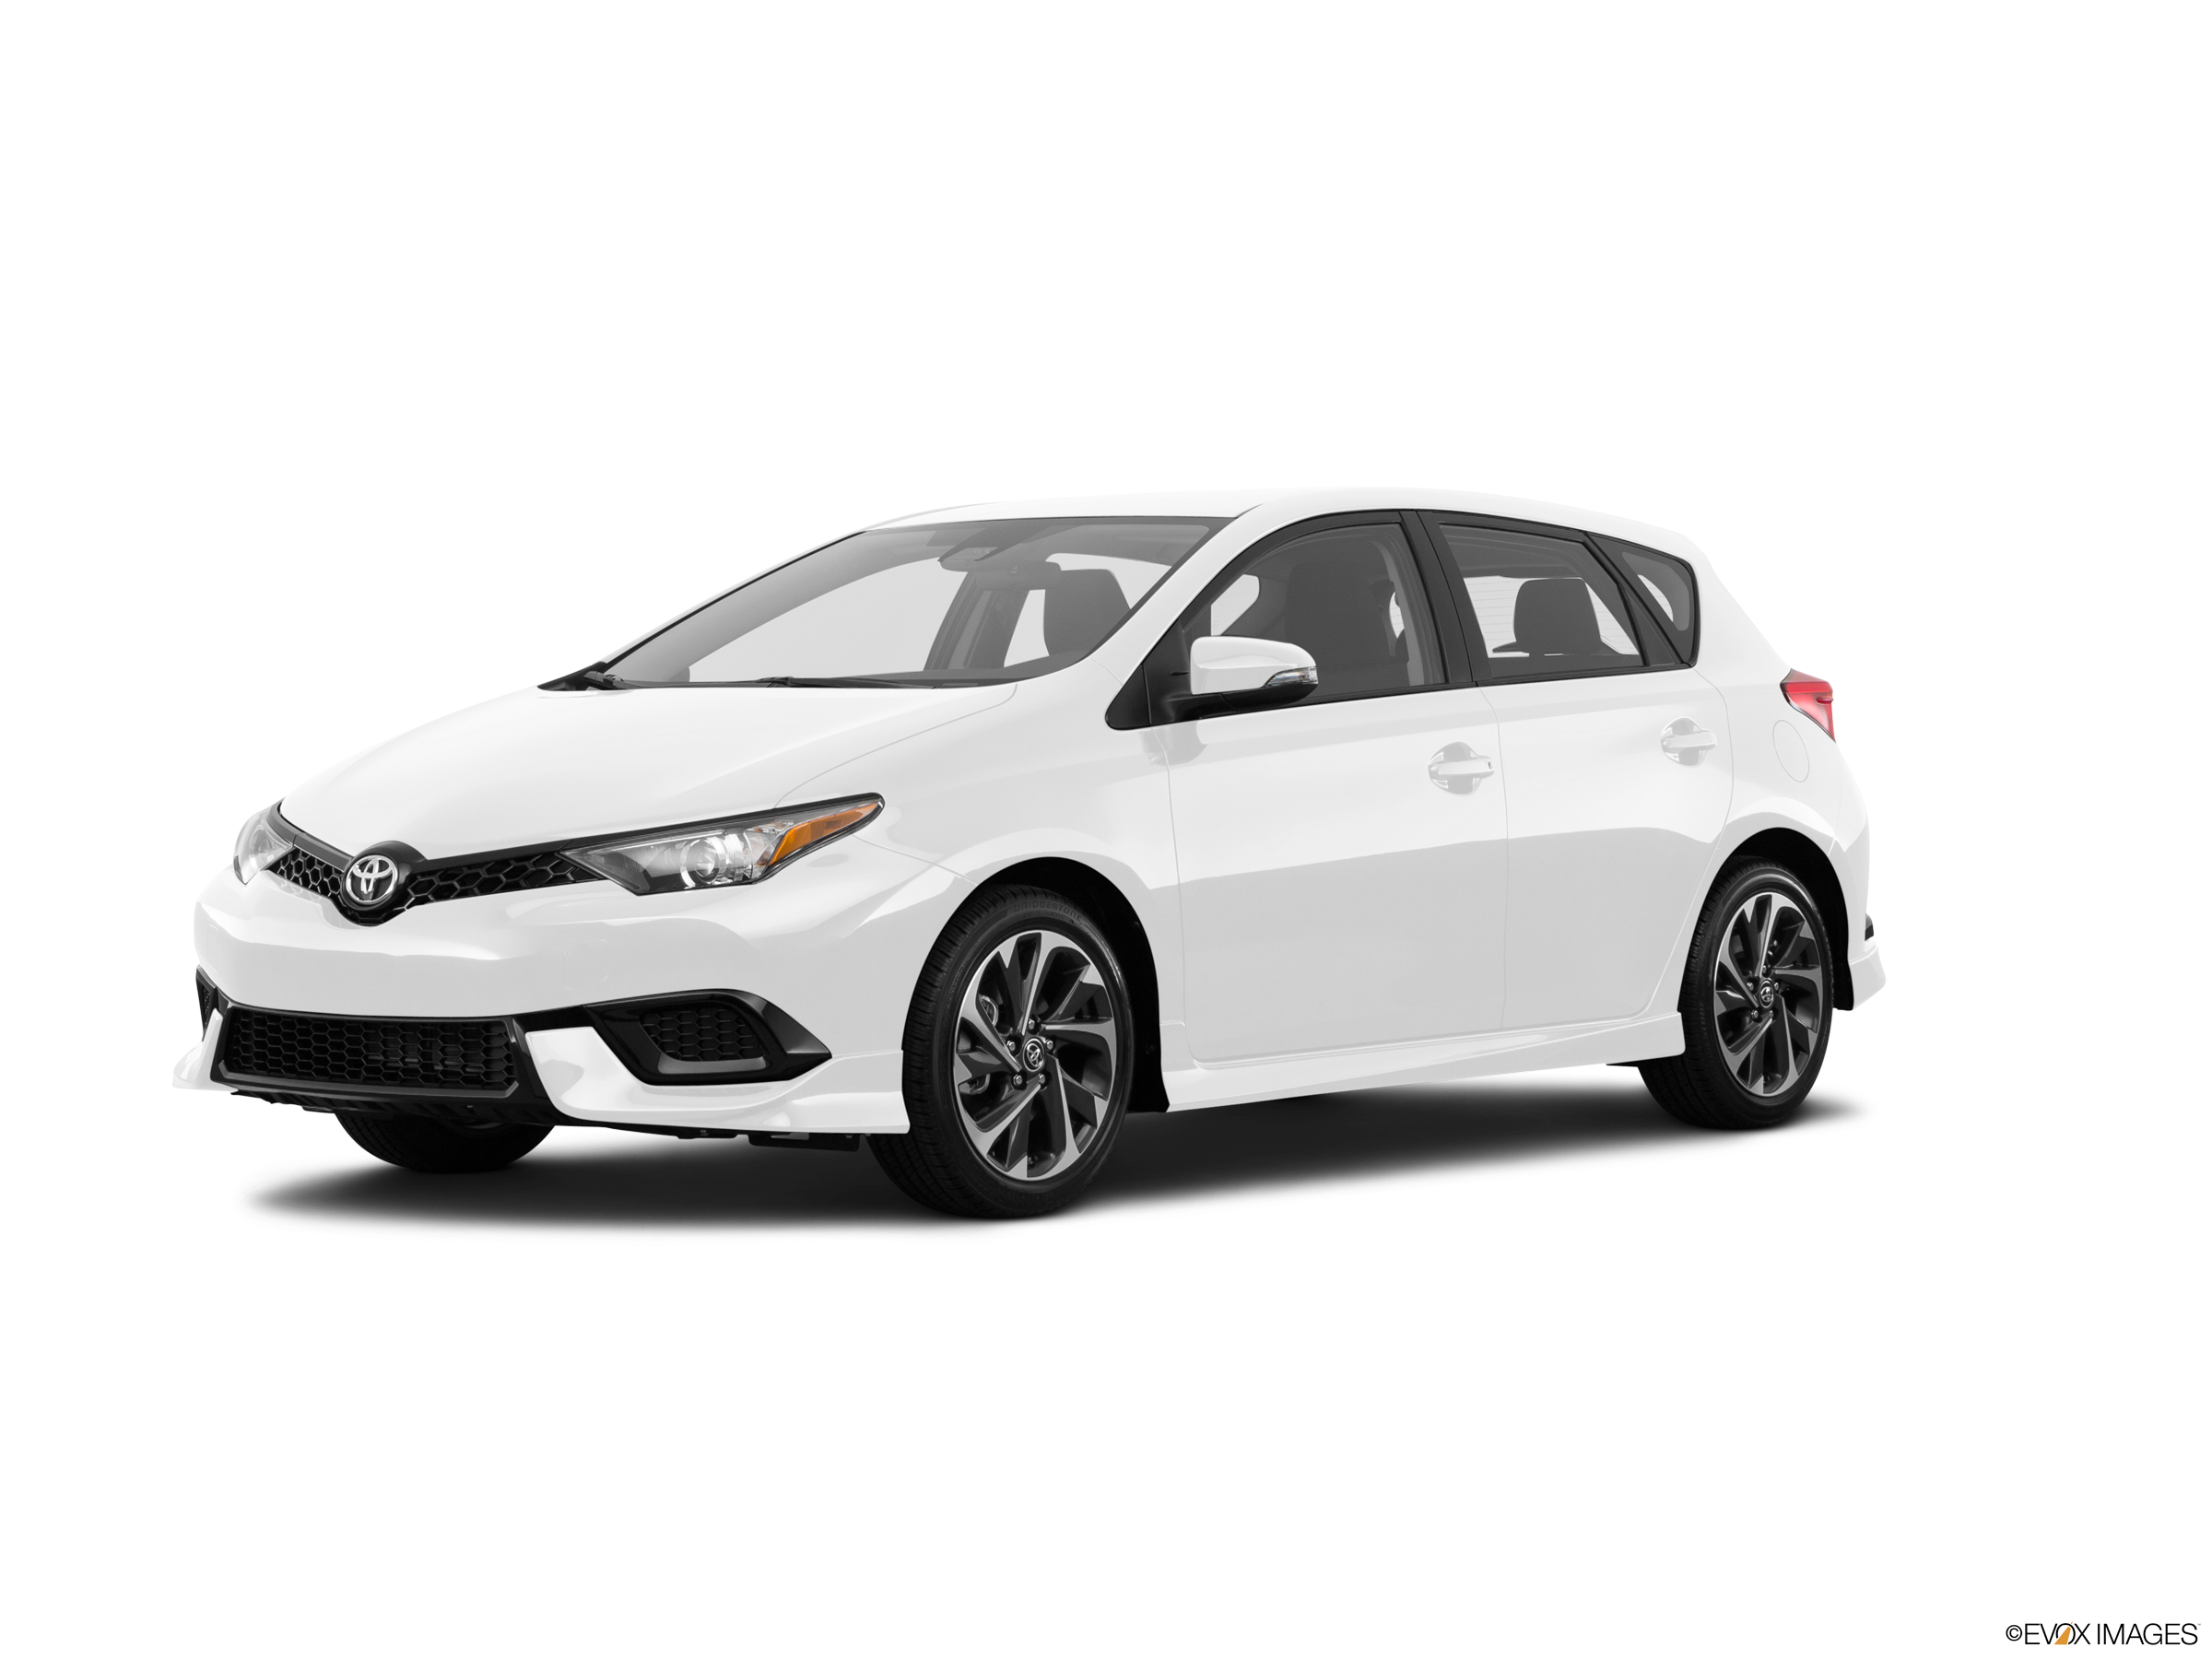 10 Coolest New Cars Under $18,000 - 2017 Toyota Corolla iM